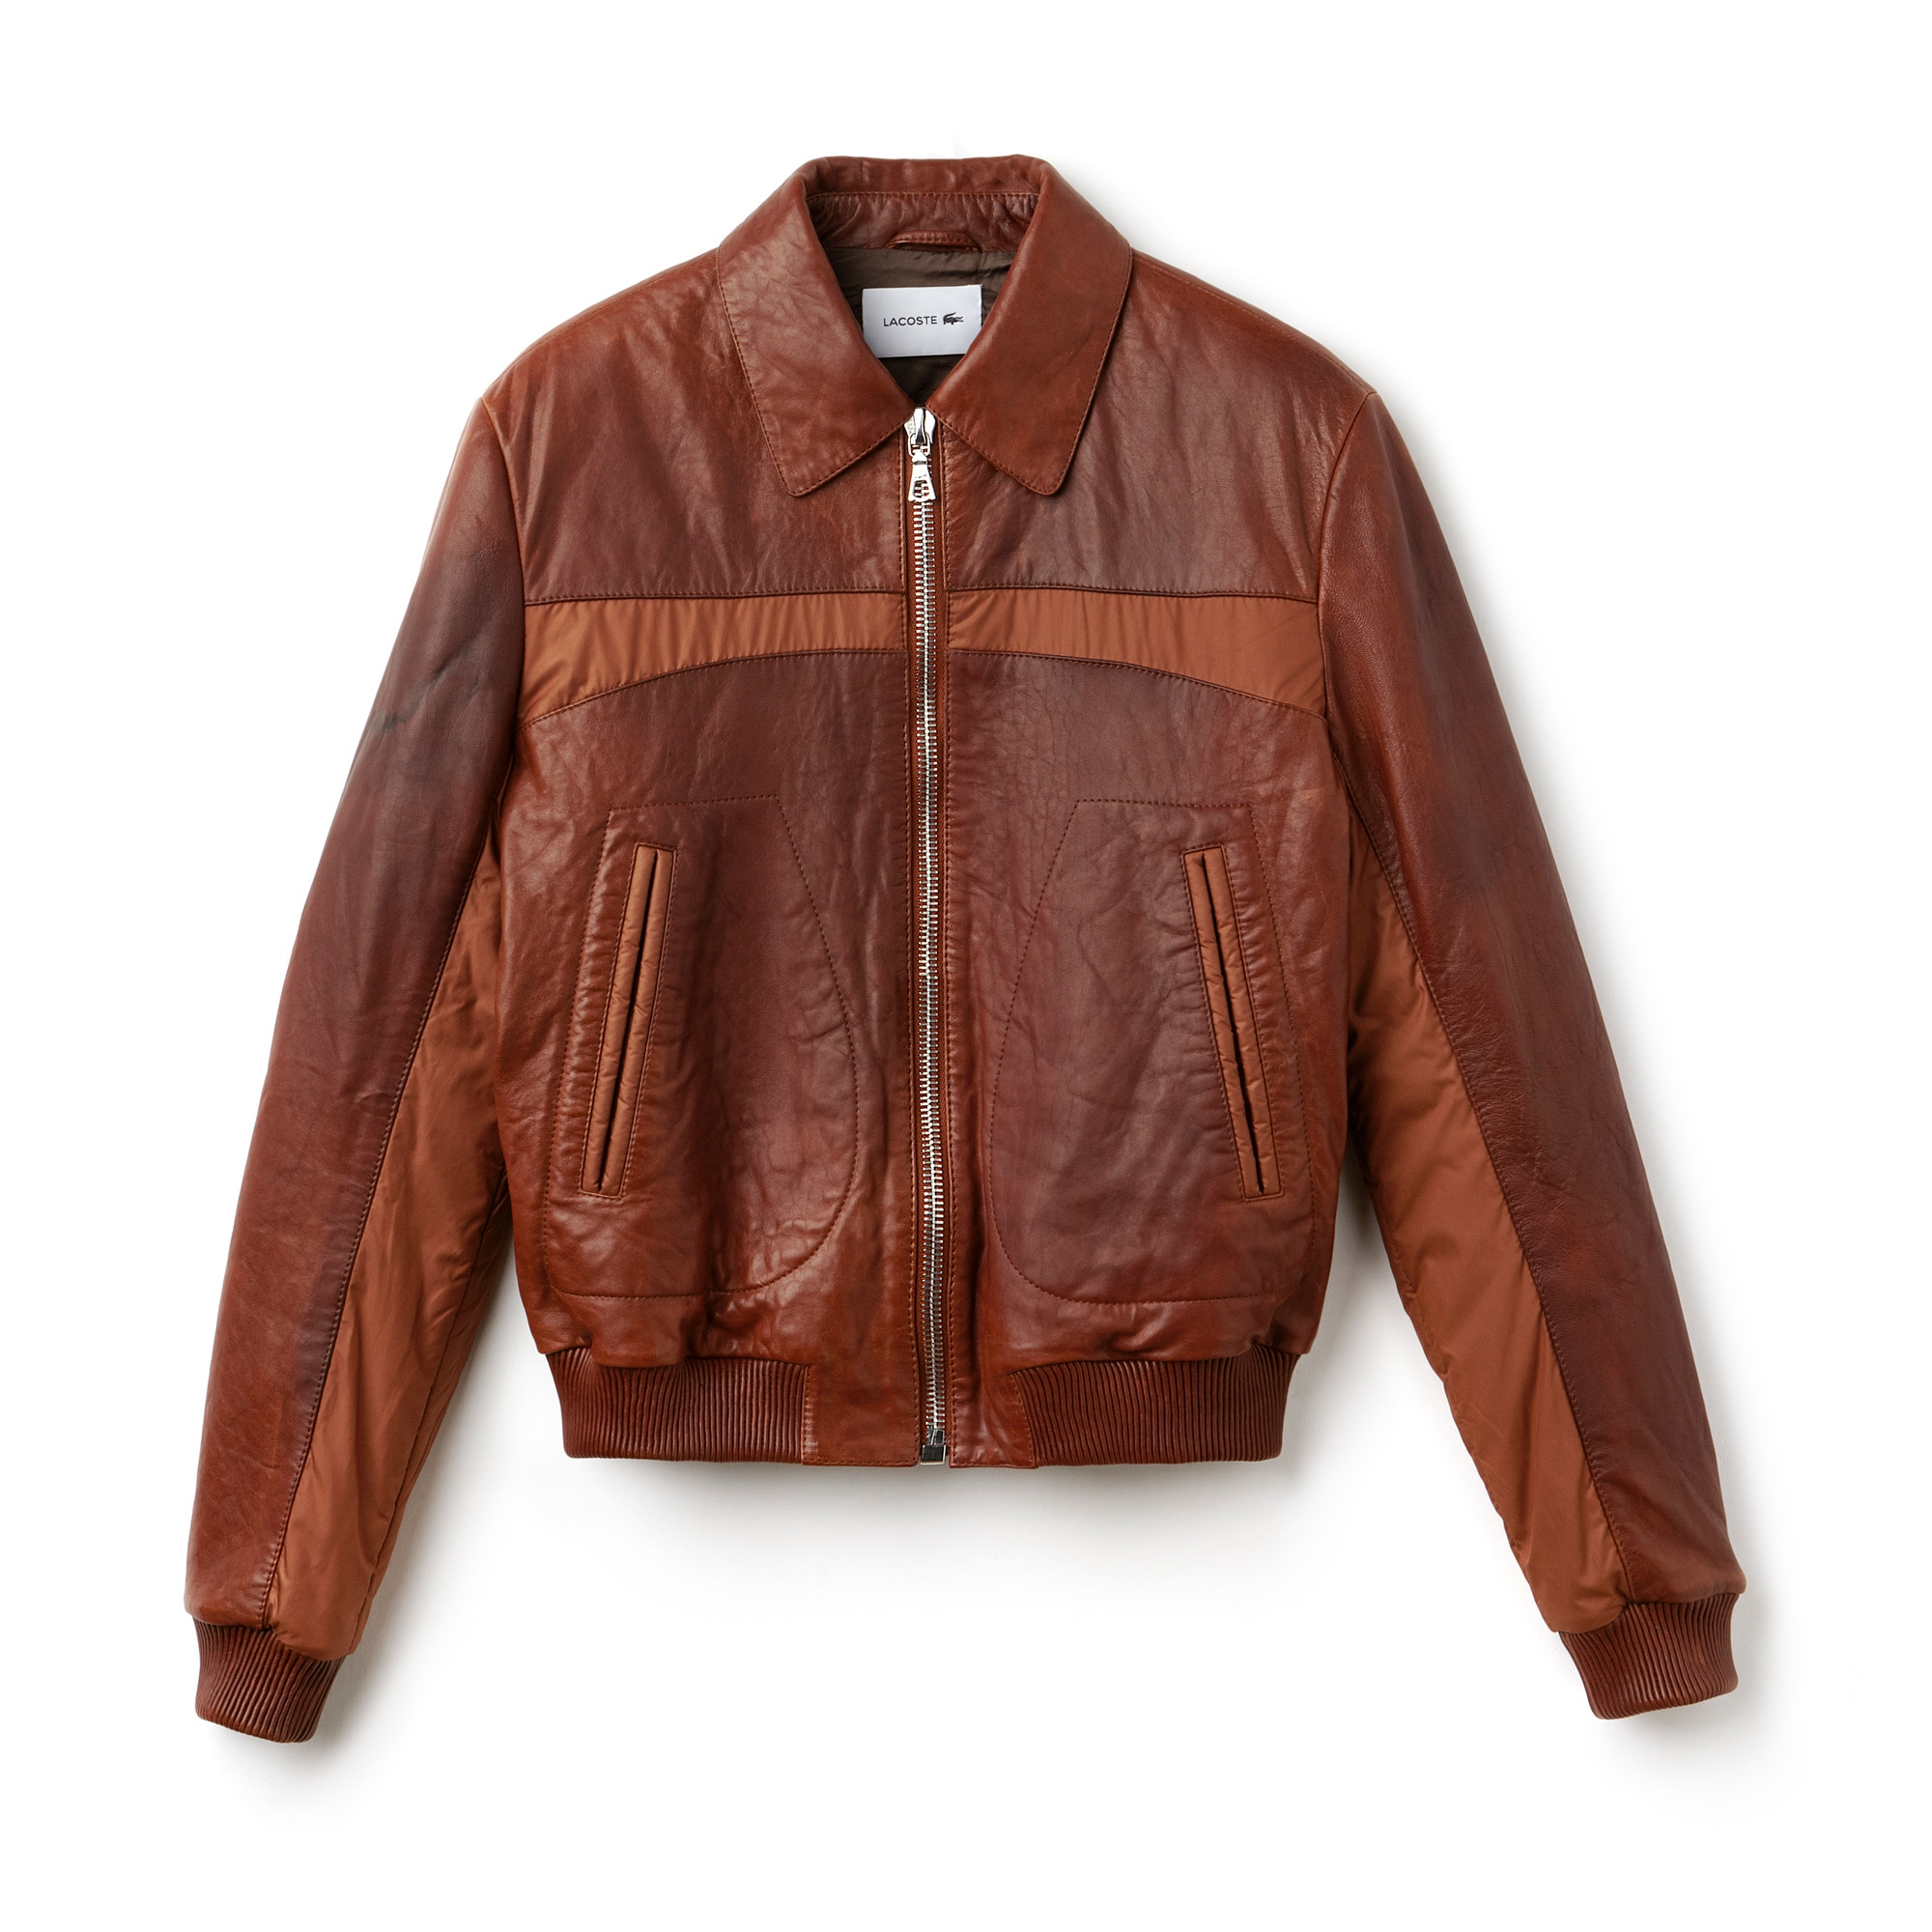 Men's Fashion Show Zippered Panel Leather Jacket